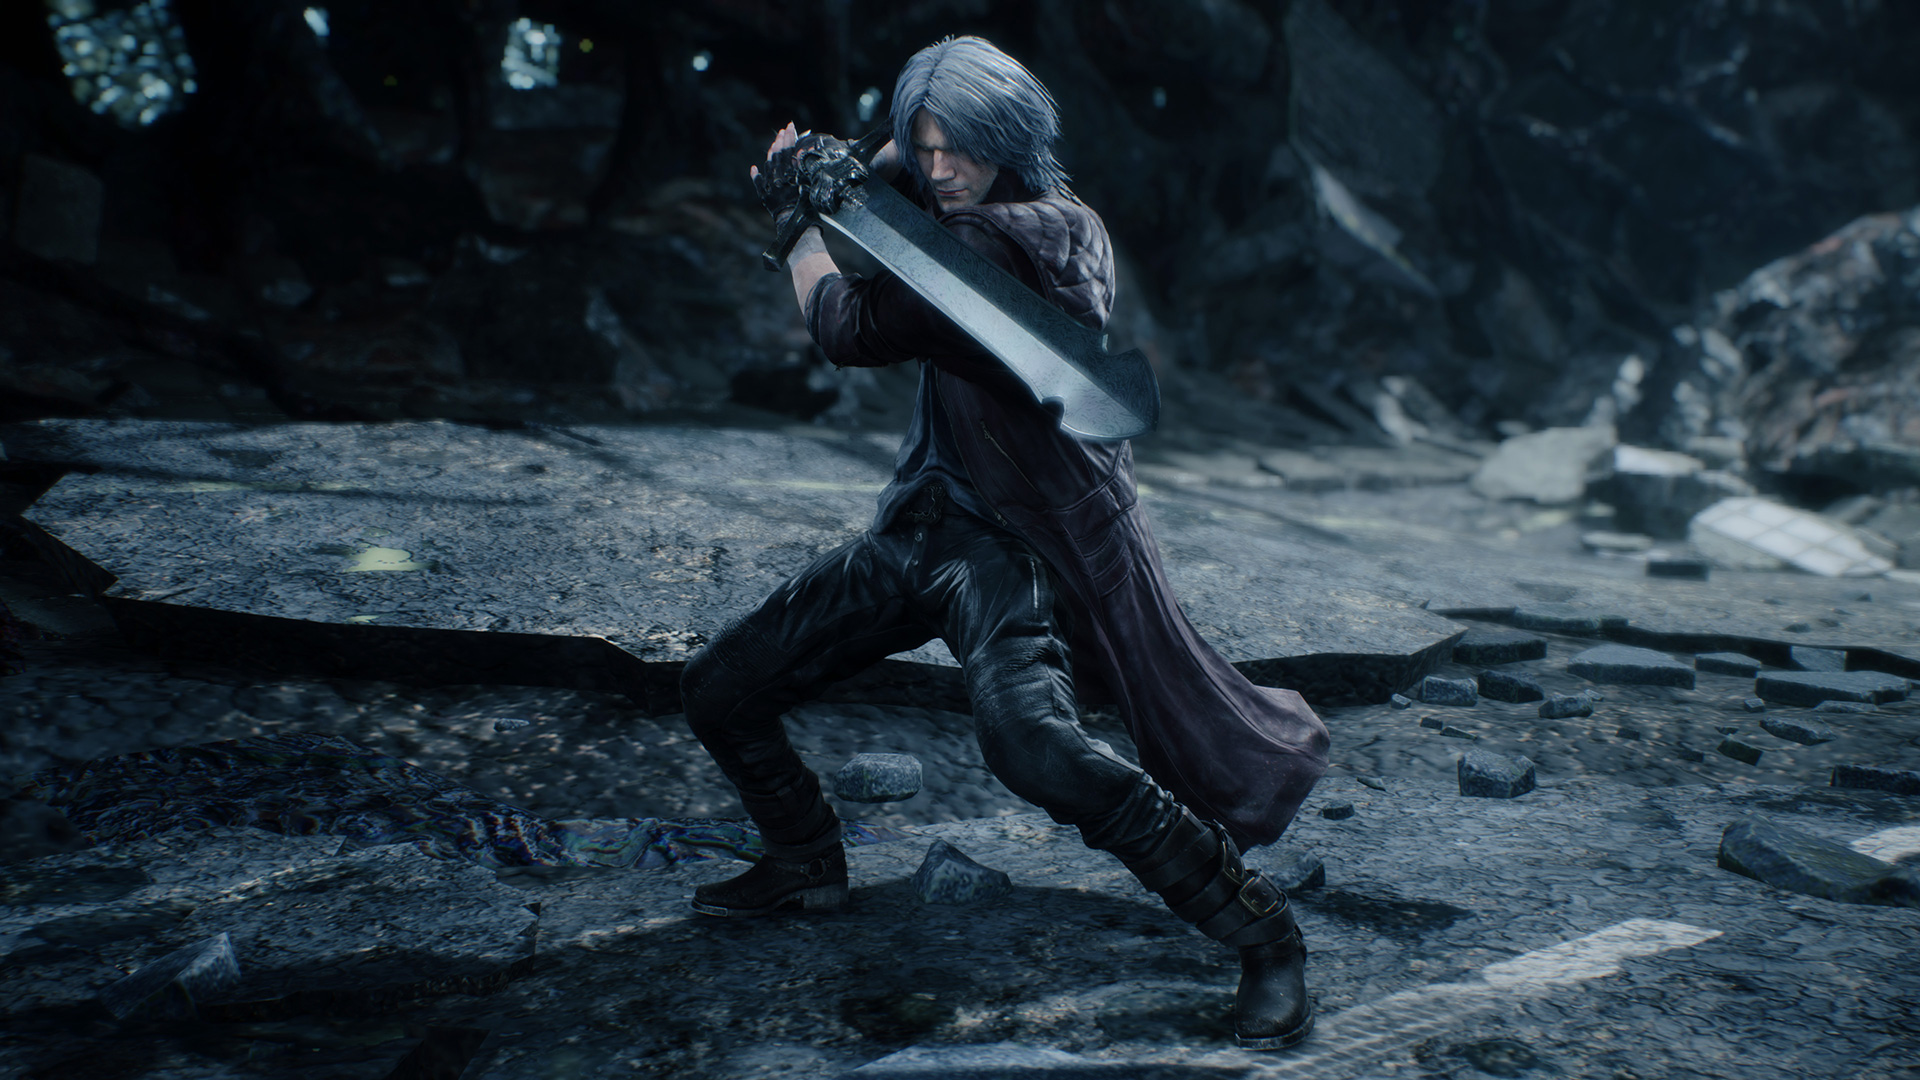 Devil May Cry 5 Wallpapers In Ultra Hd 4k Gameranx